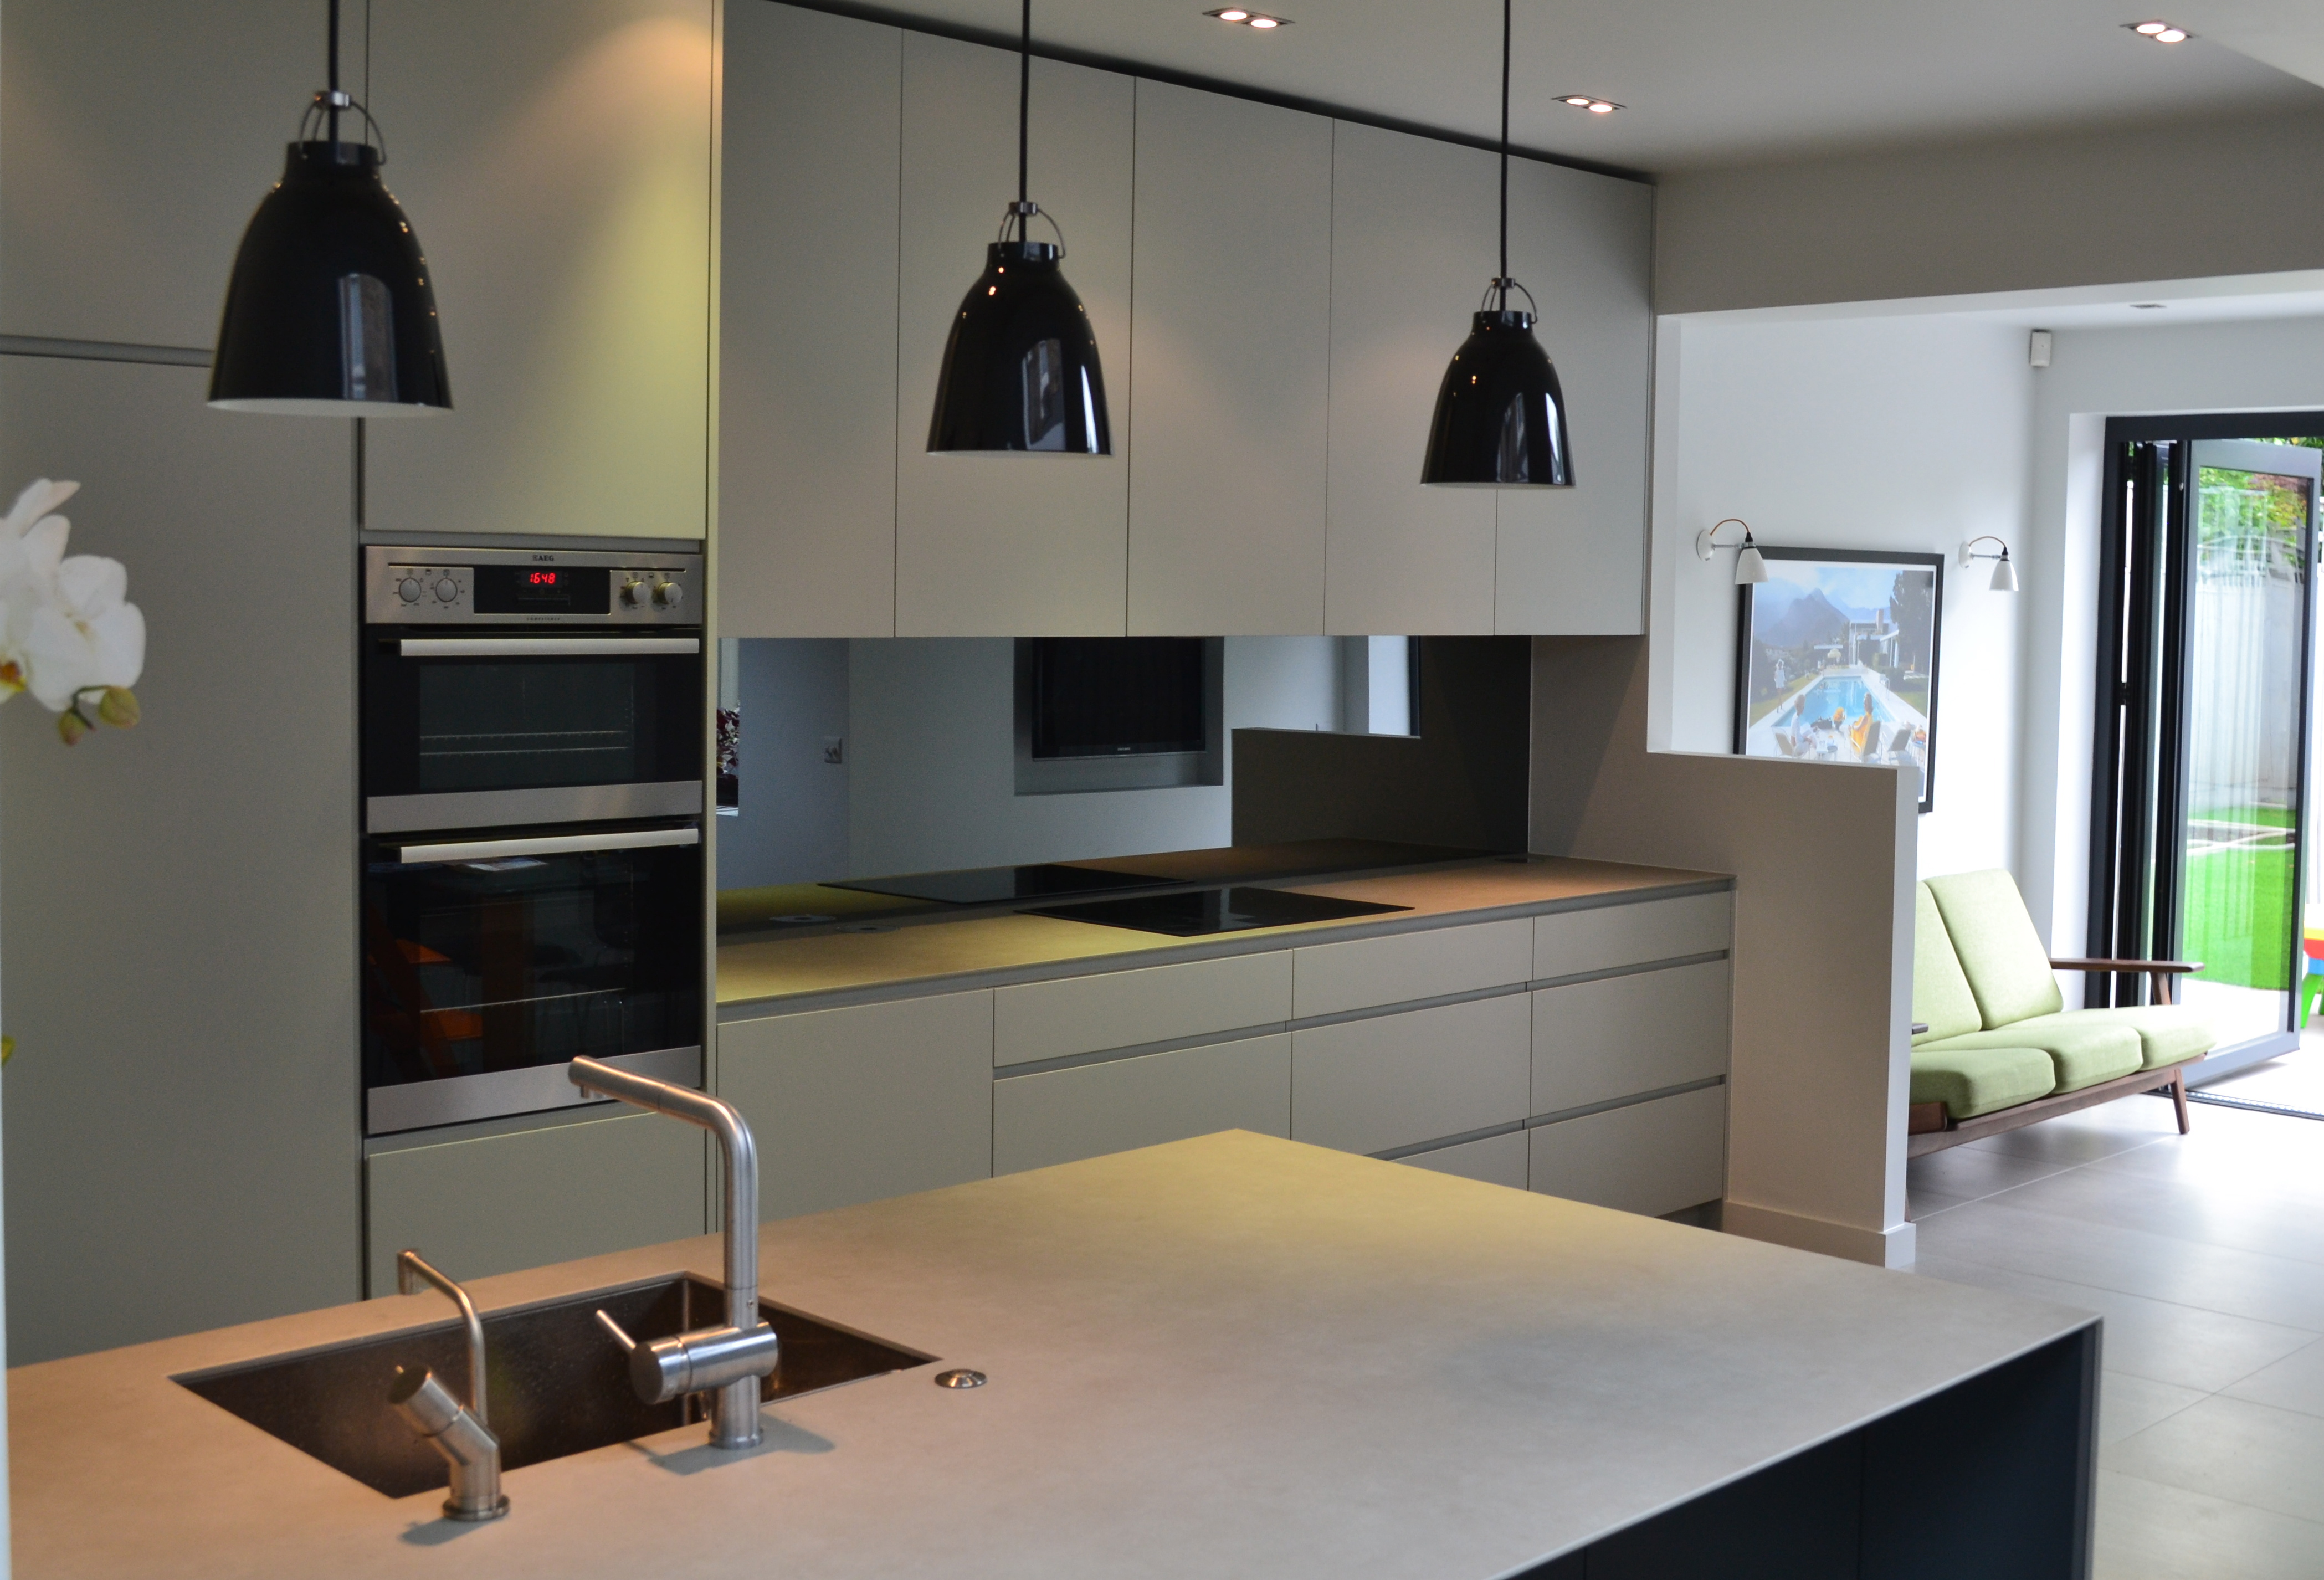 View of kitchen island and wall units with pendant lamps